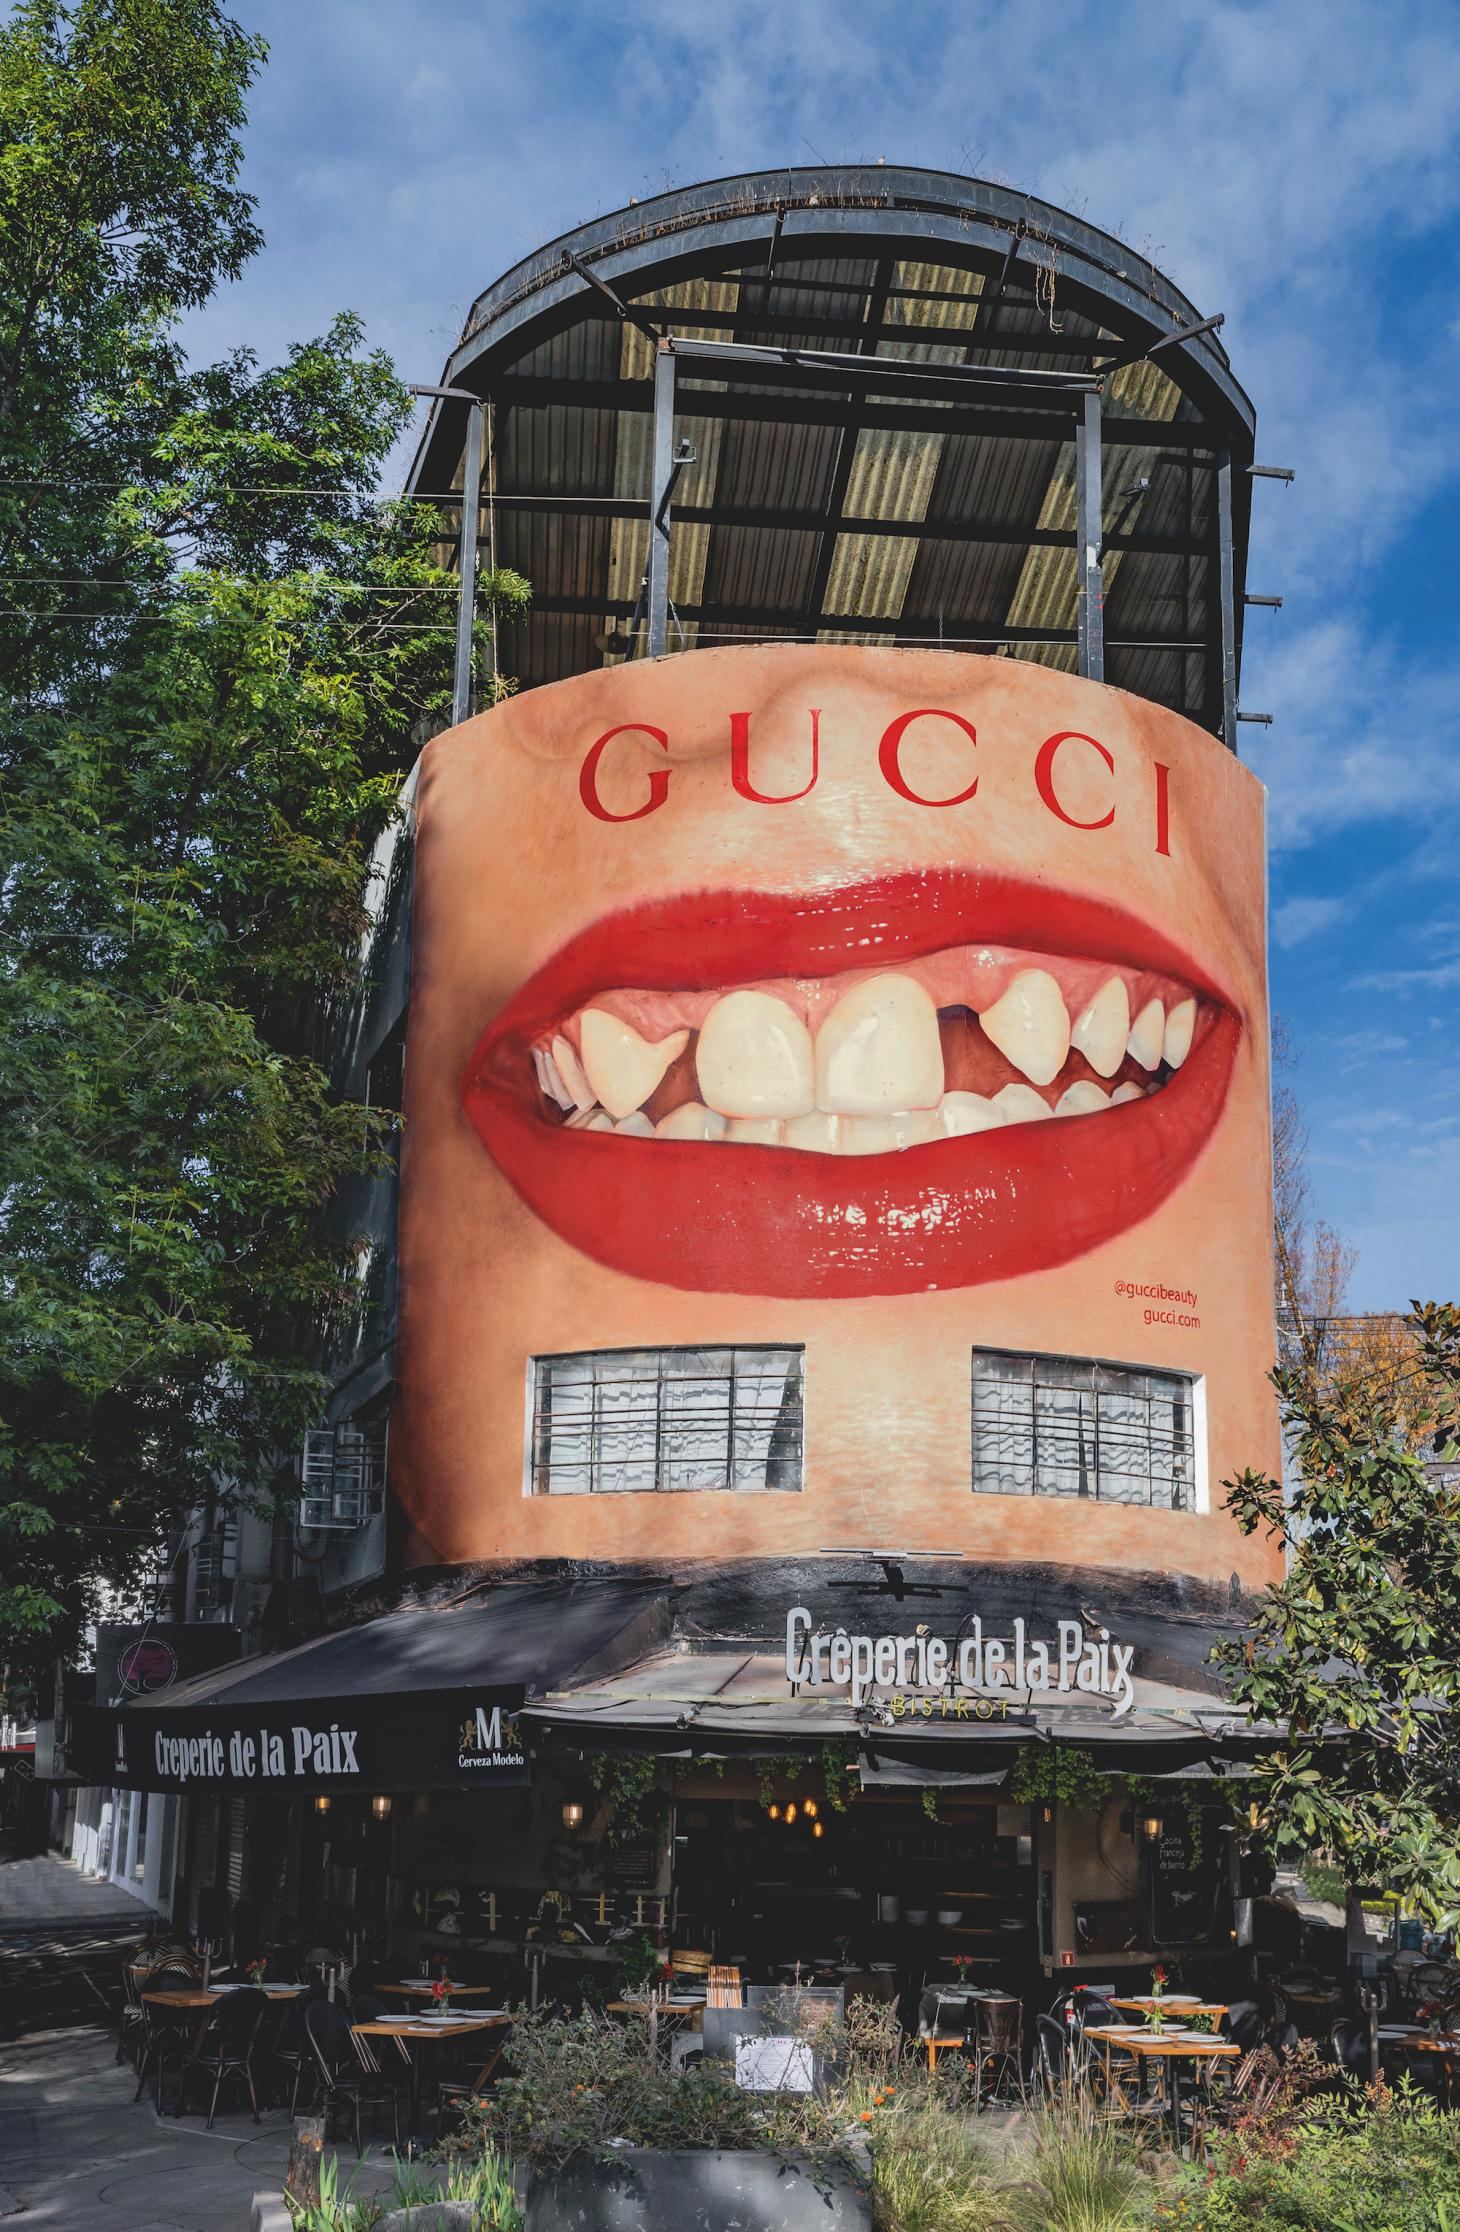 billboard displaying smiling red lips is situated above a cafe